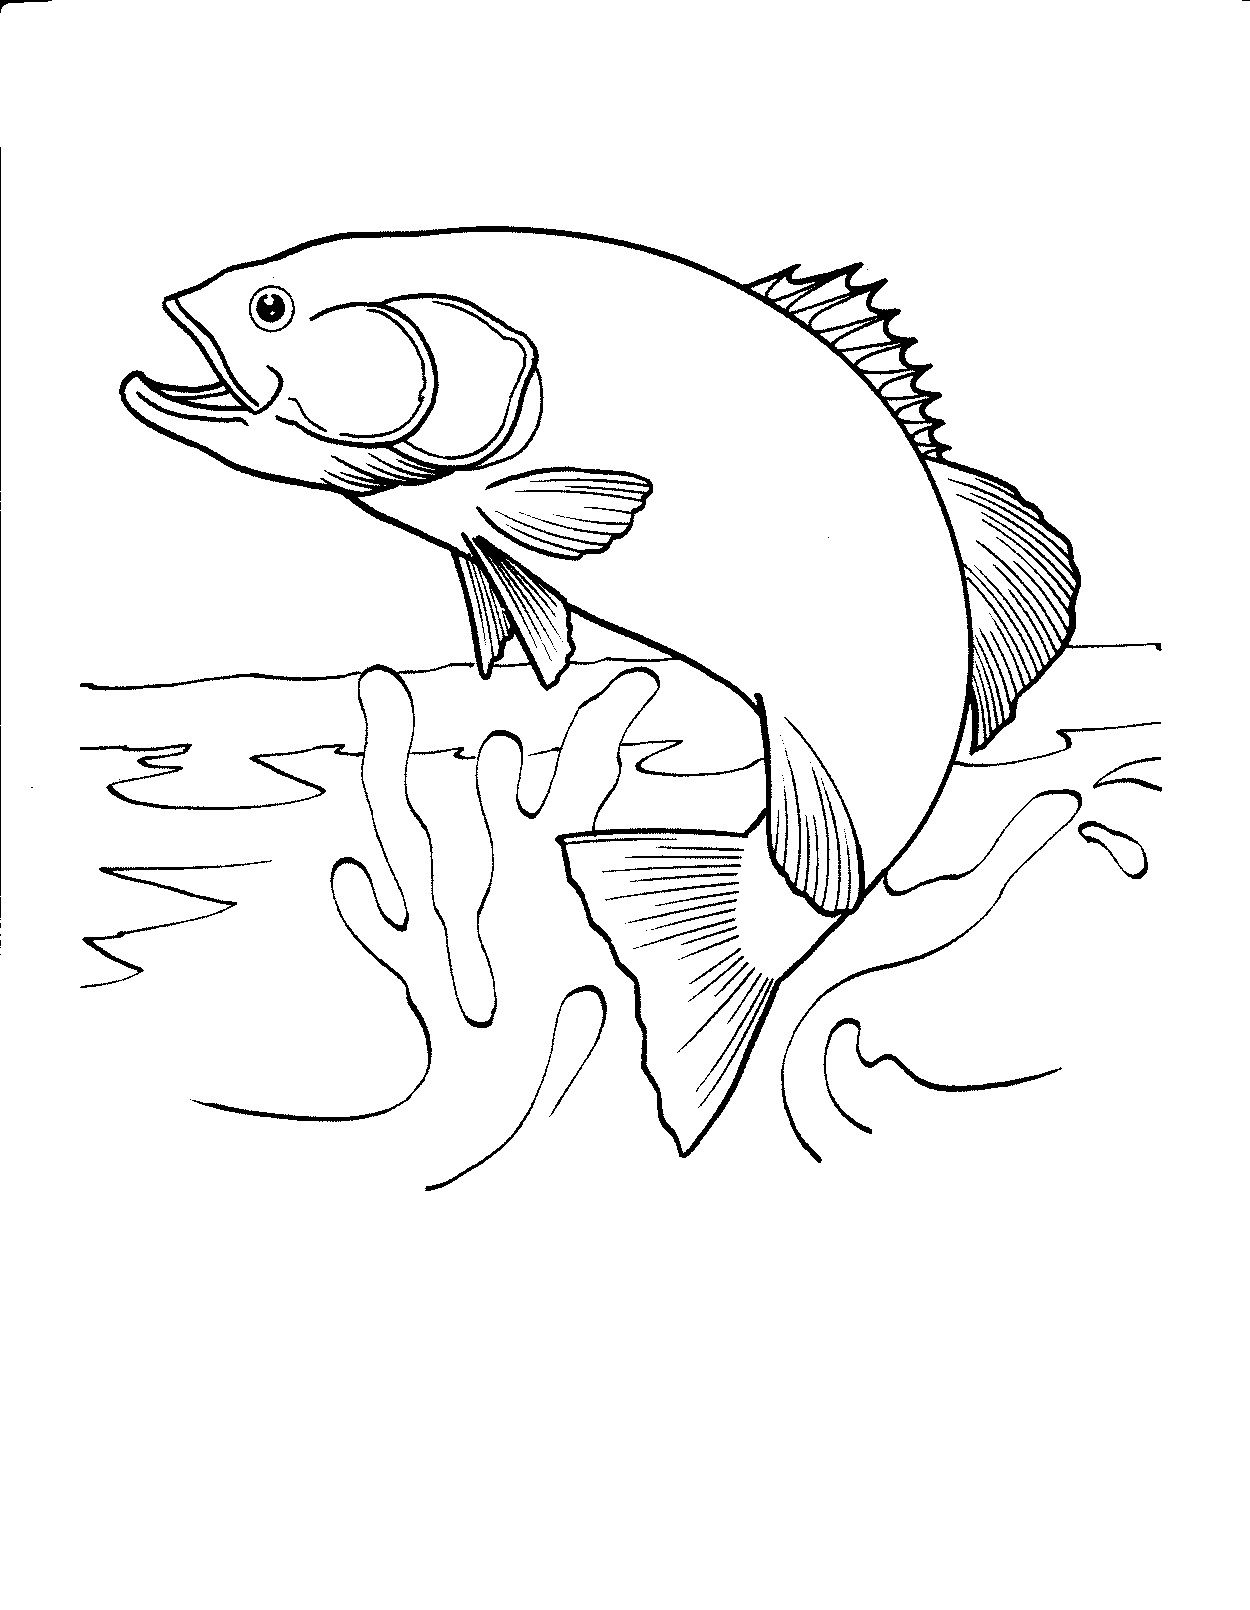 Free Printable Fish Coloring Pages For Kids | Honey Look | Fish - Free Printable Fish Coloring Pages